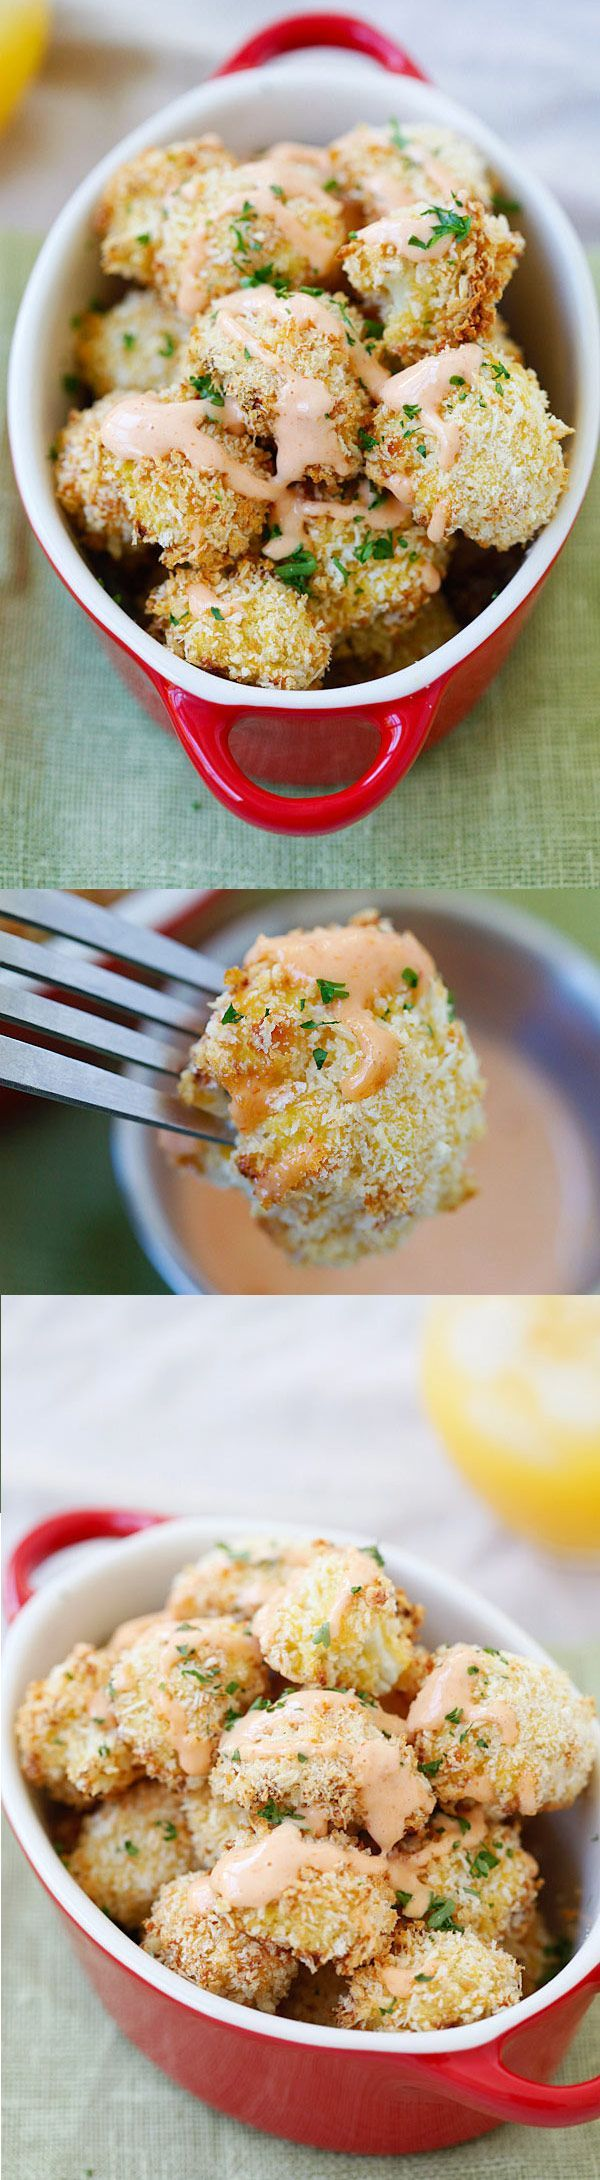 Parmesan Baked Cauliflower – crispy, healthy cauliflower coated with Parmesan cheese and panko bread crumbs. Easy, yummy and so good!